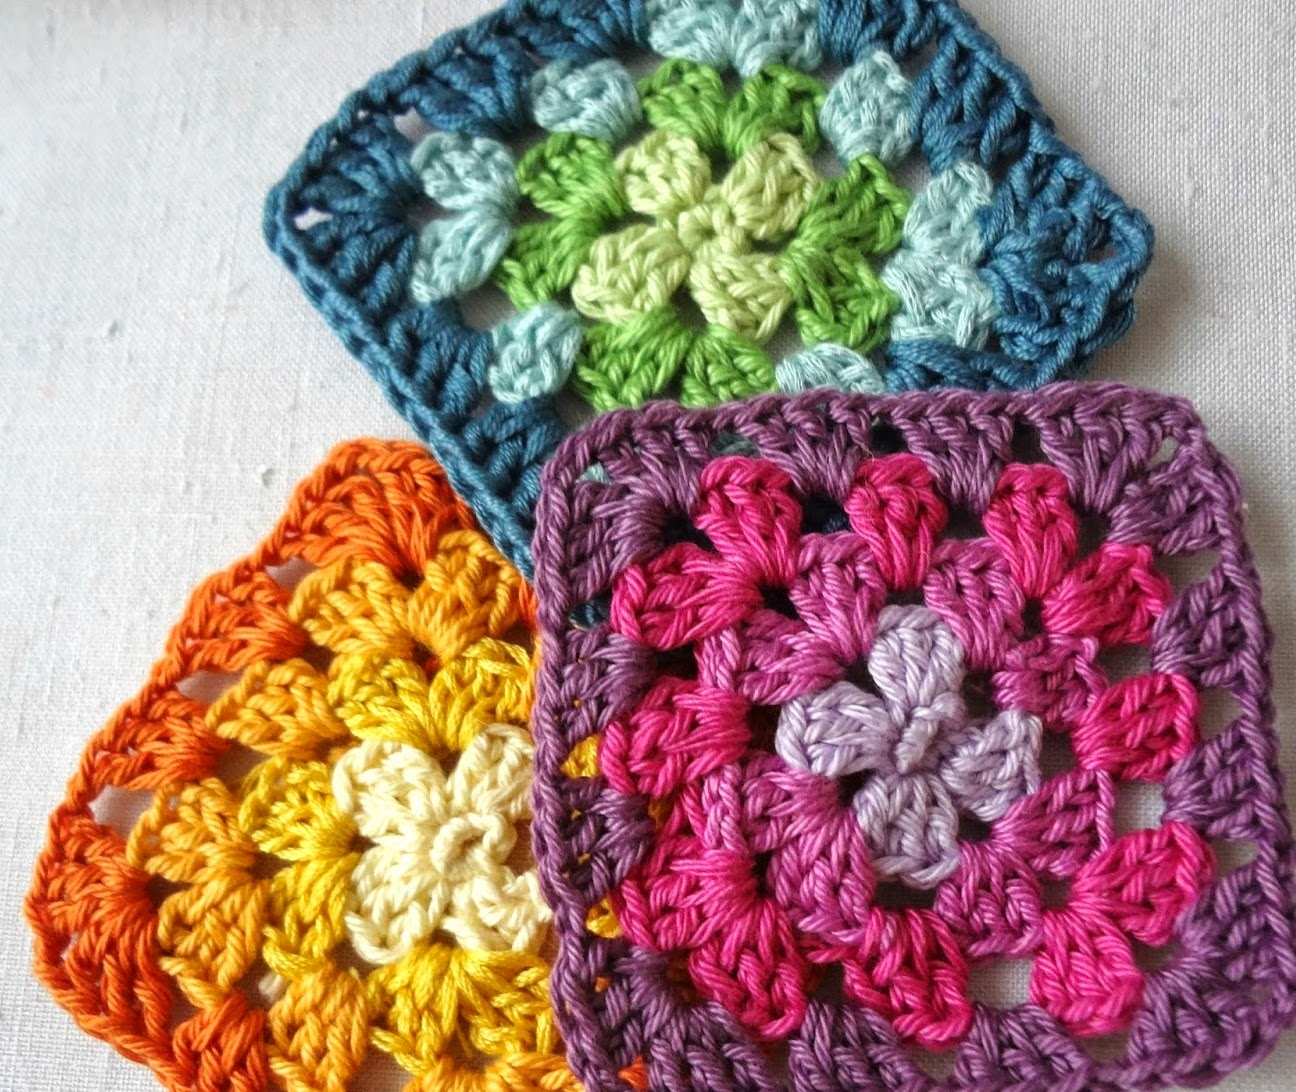 http://thelittletreasures.blogspot.com/2015/01/how-to-read-granny-square-charts.html